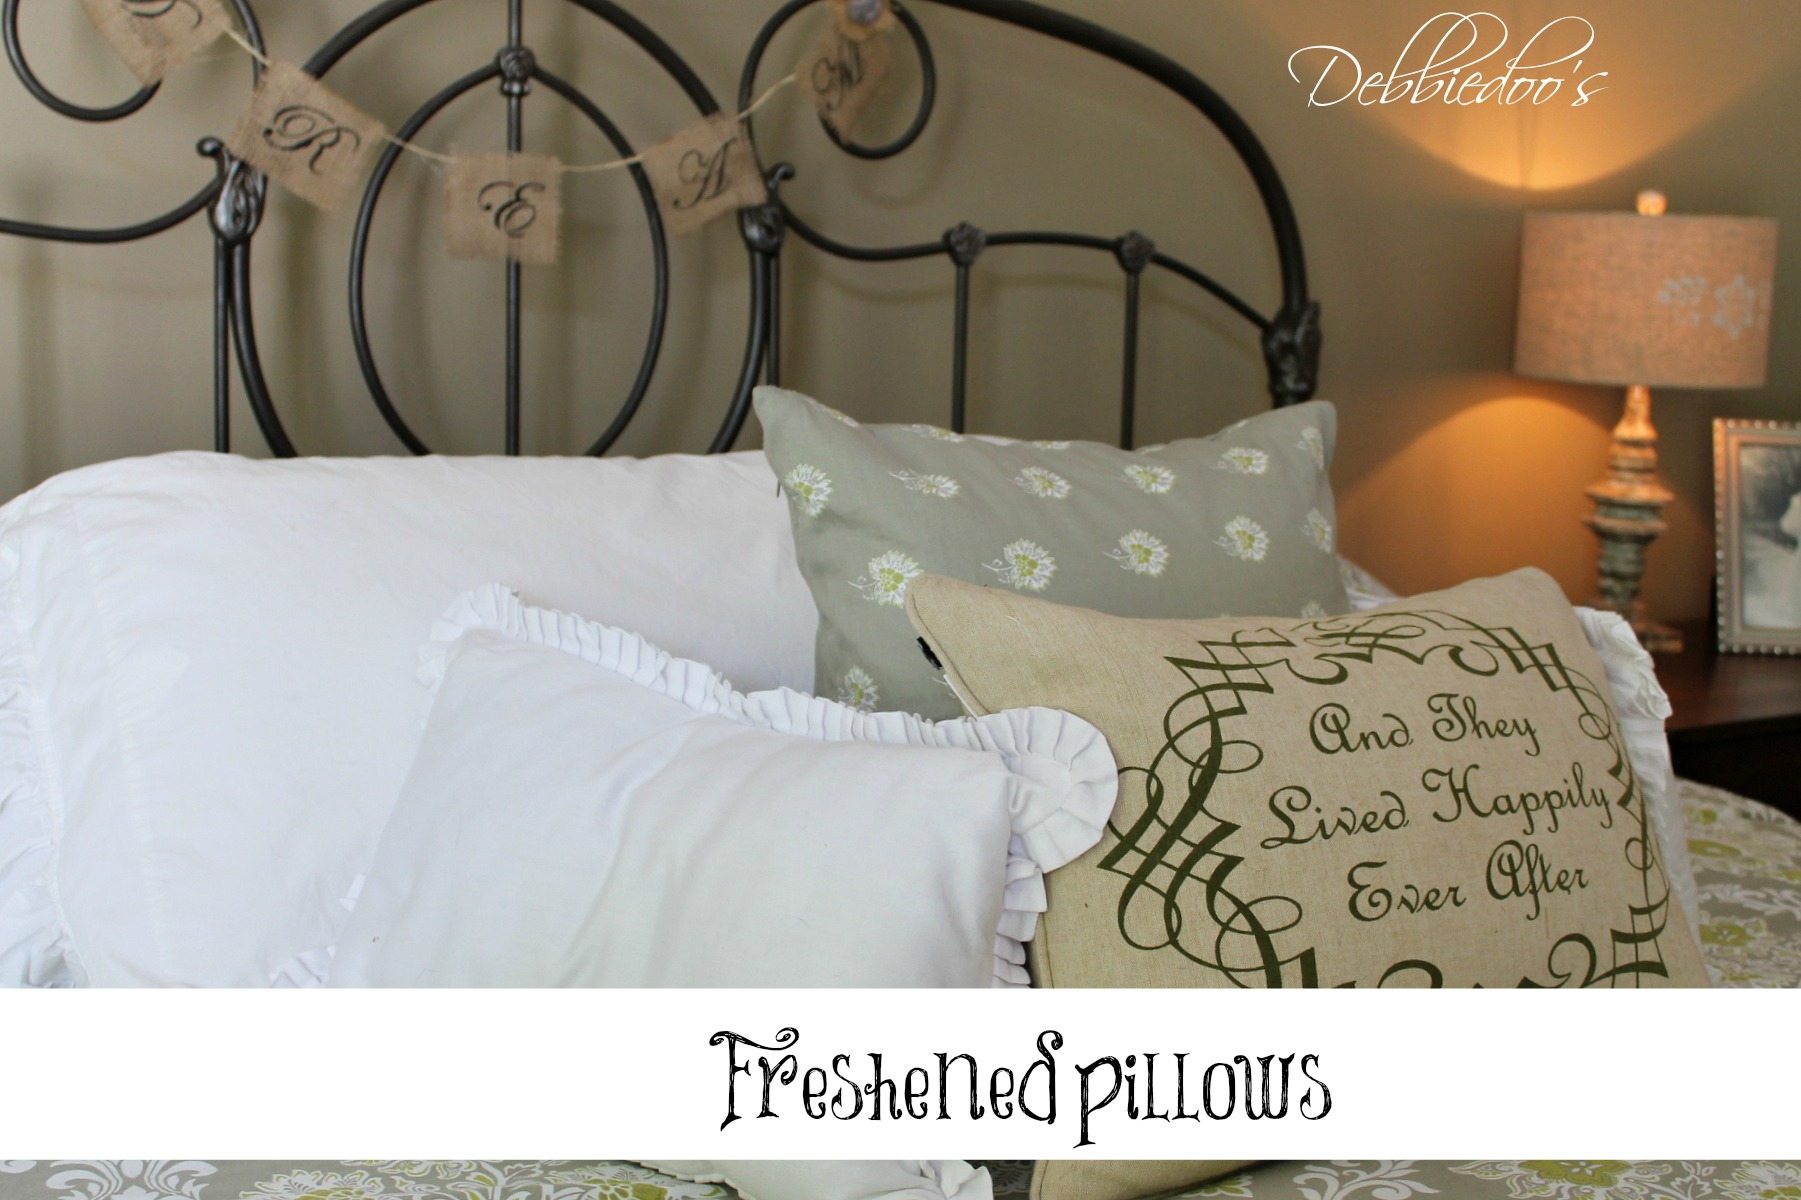 freshened pillows